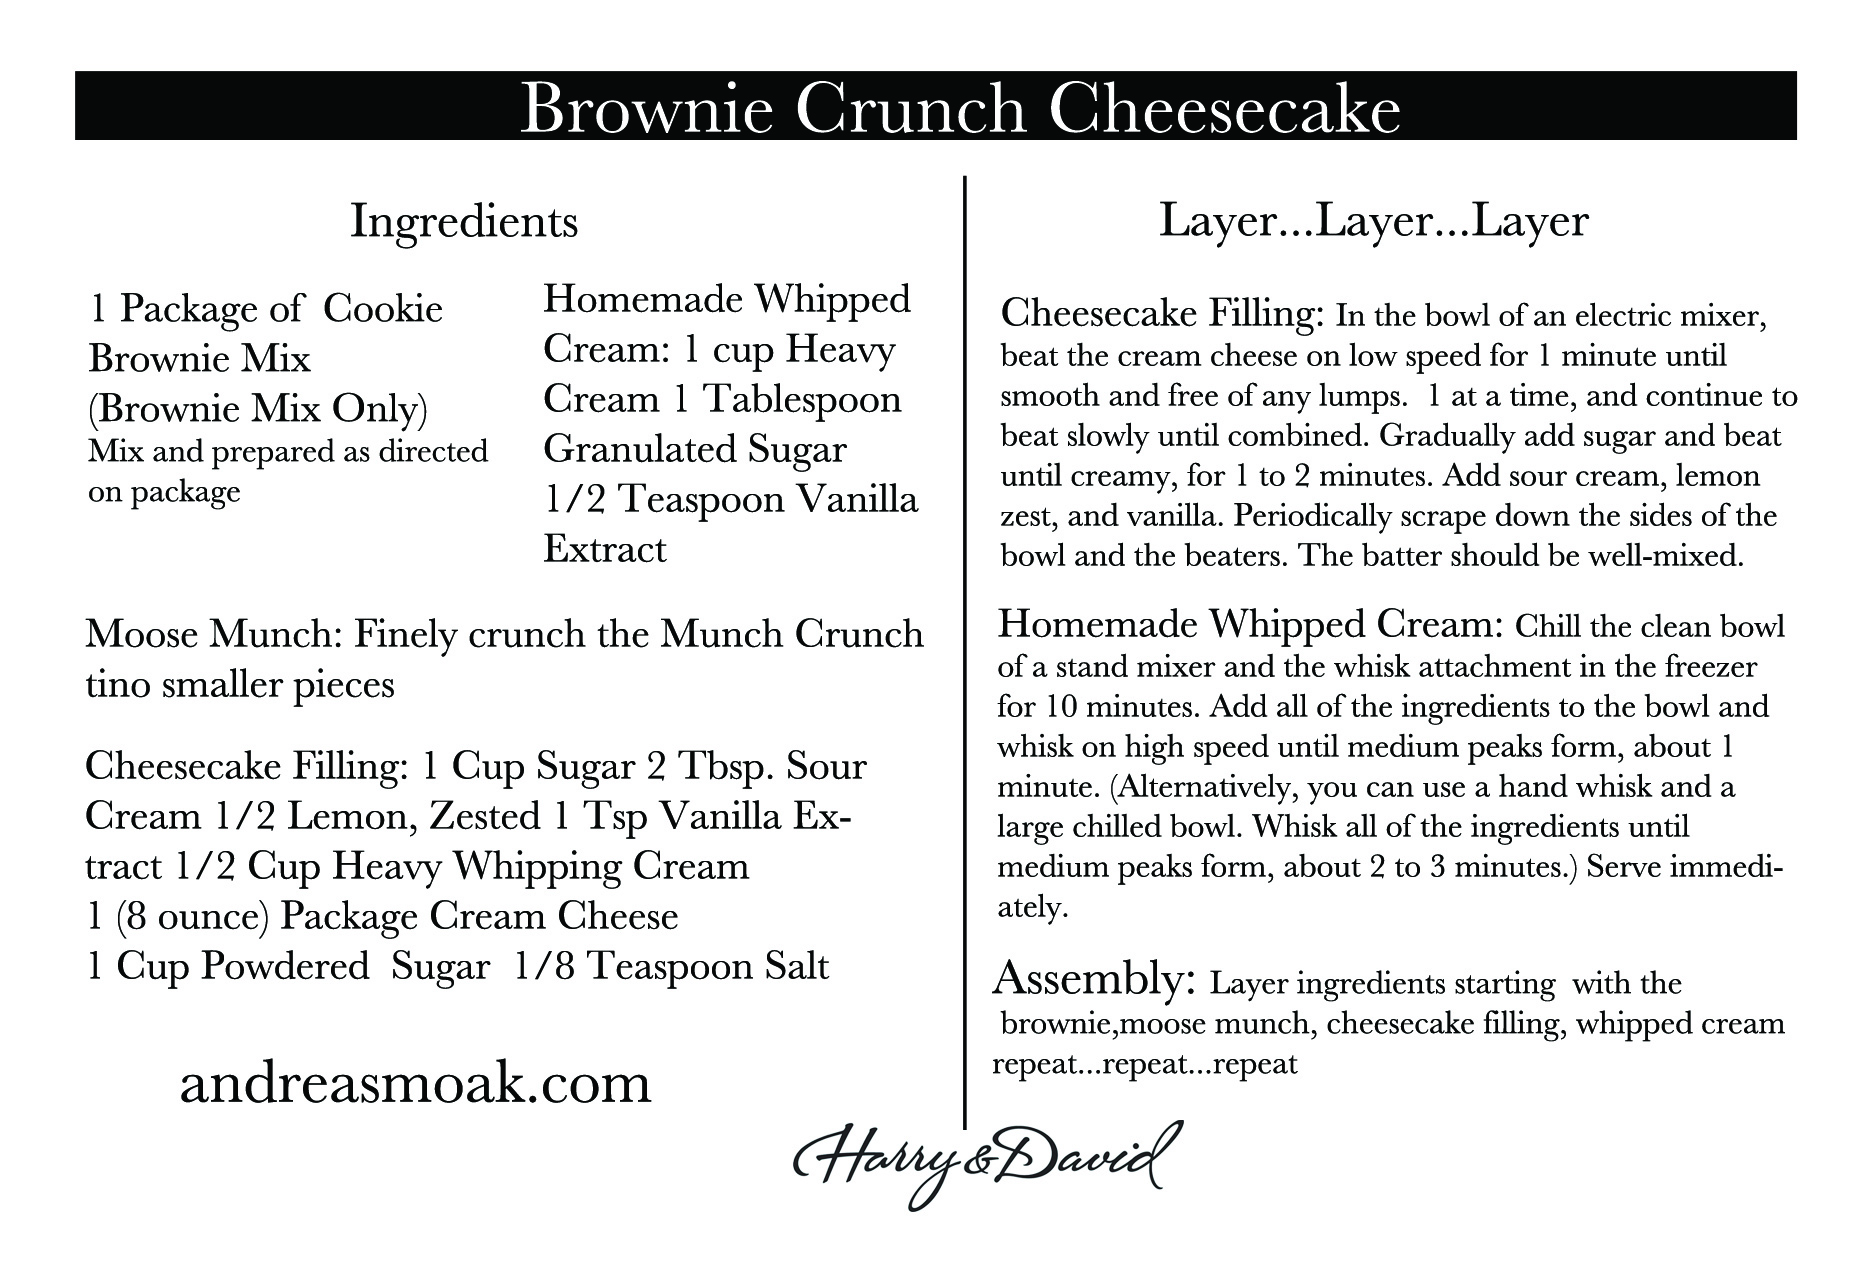 Brownie_ Crunch_Recipe_Card_Ingredients.jpg